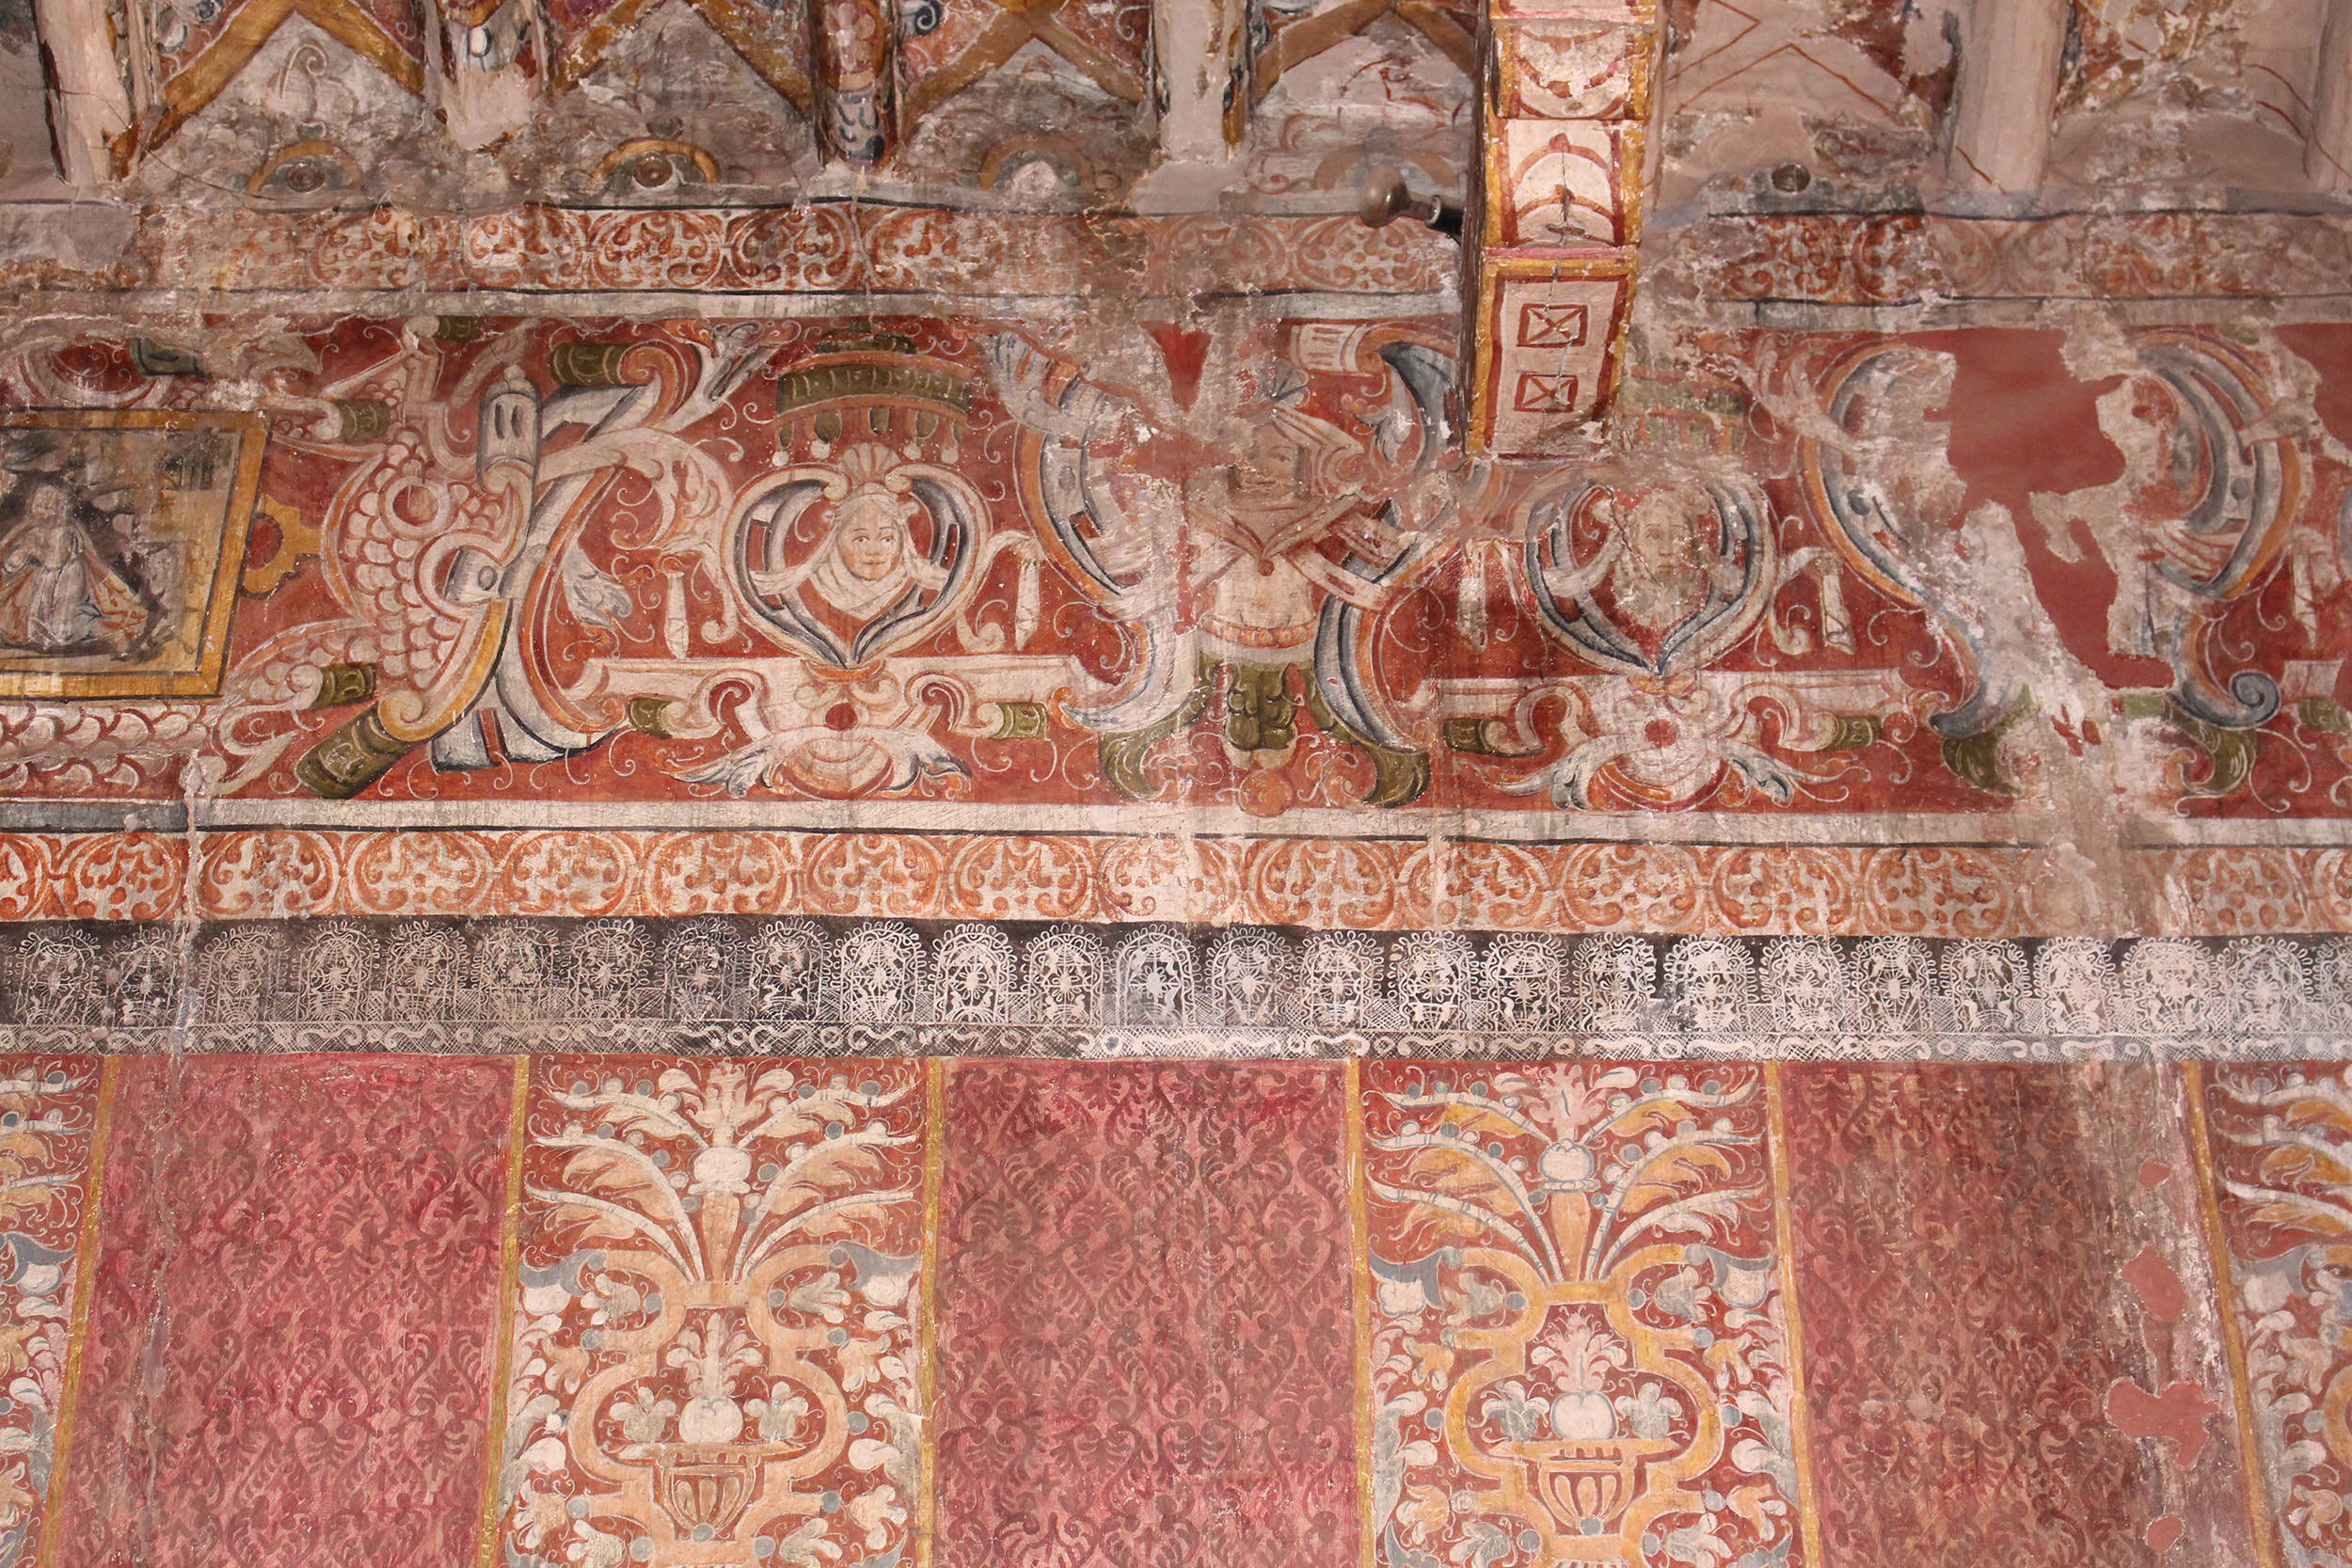 Fig. 14 Detail, textile murals at Capilla de Nuestra Señora de la Candelaria de Canincunca decorated with painted damasks, late 17th or early 18th century, Quispicanchi Province. Note the delicate depiction of a lace border above the trompe l'oeil damask hangings. Photo by author.